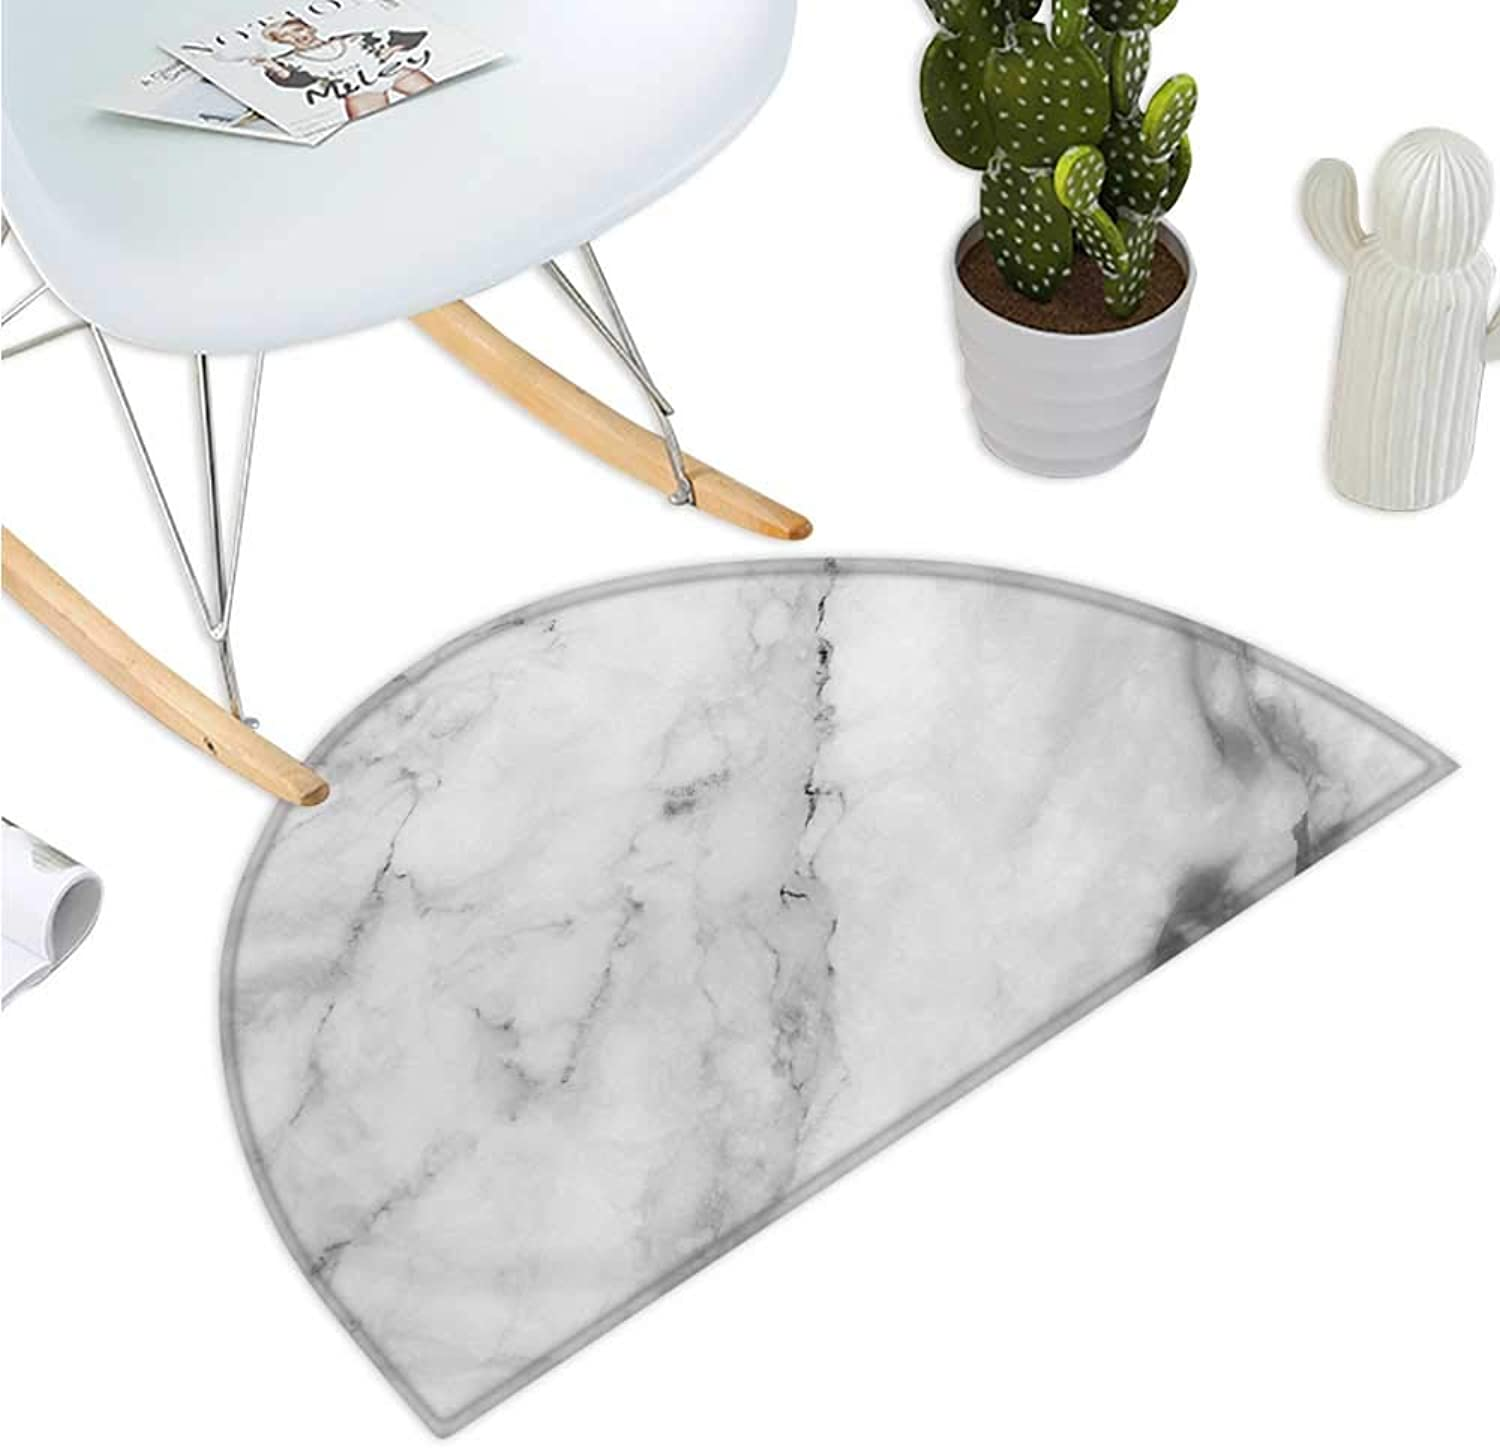 Marble Semicircular Cushion Granite Surface Motif with Sketch Nature Effect and Cracks Antique Style Image Entry Door Mat H 47.2  xD 70.8  Grey Dust White